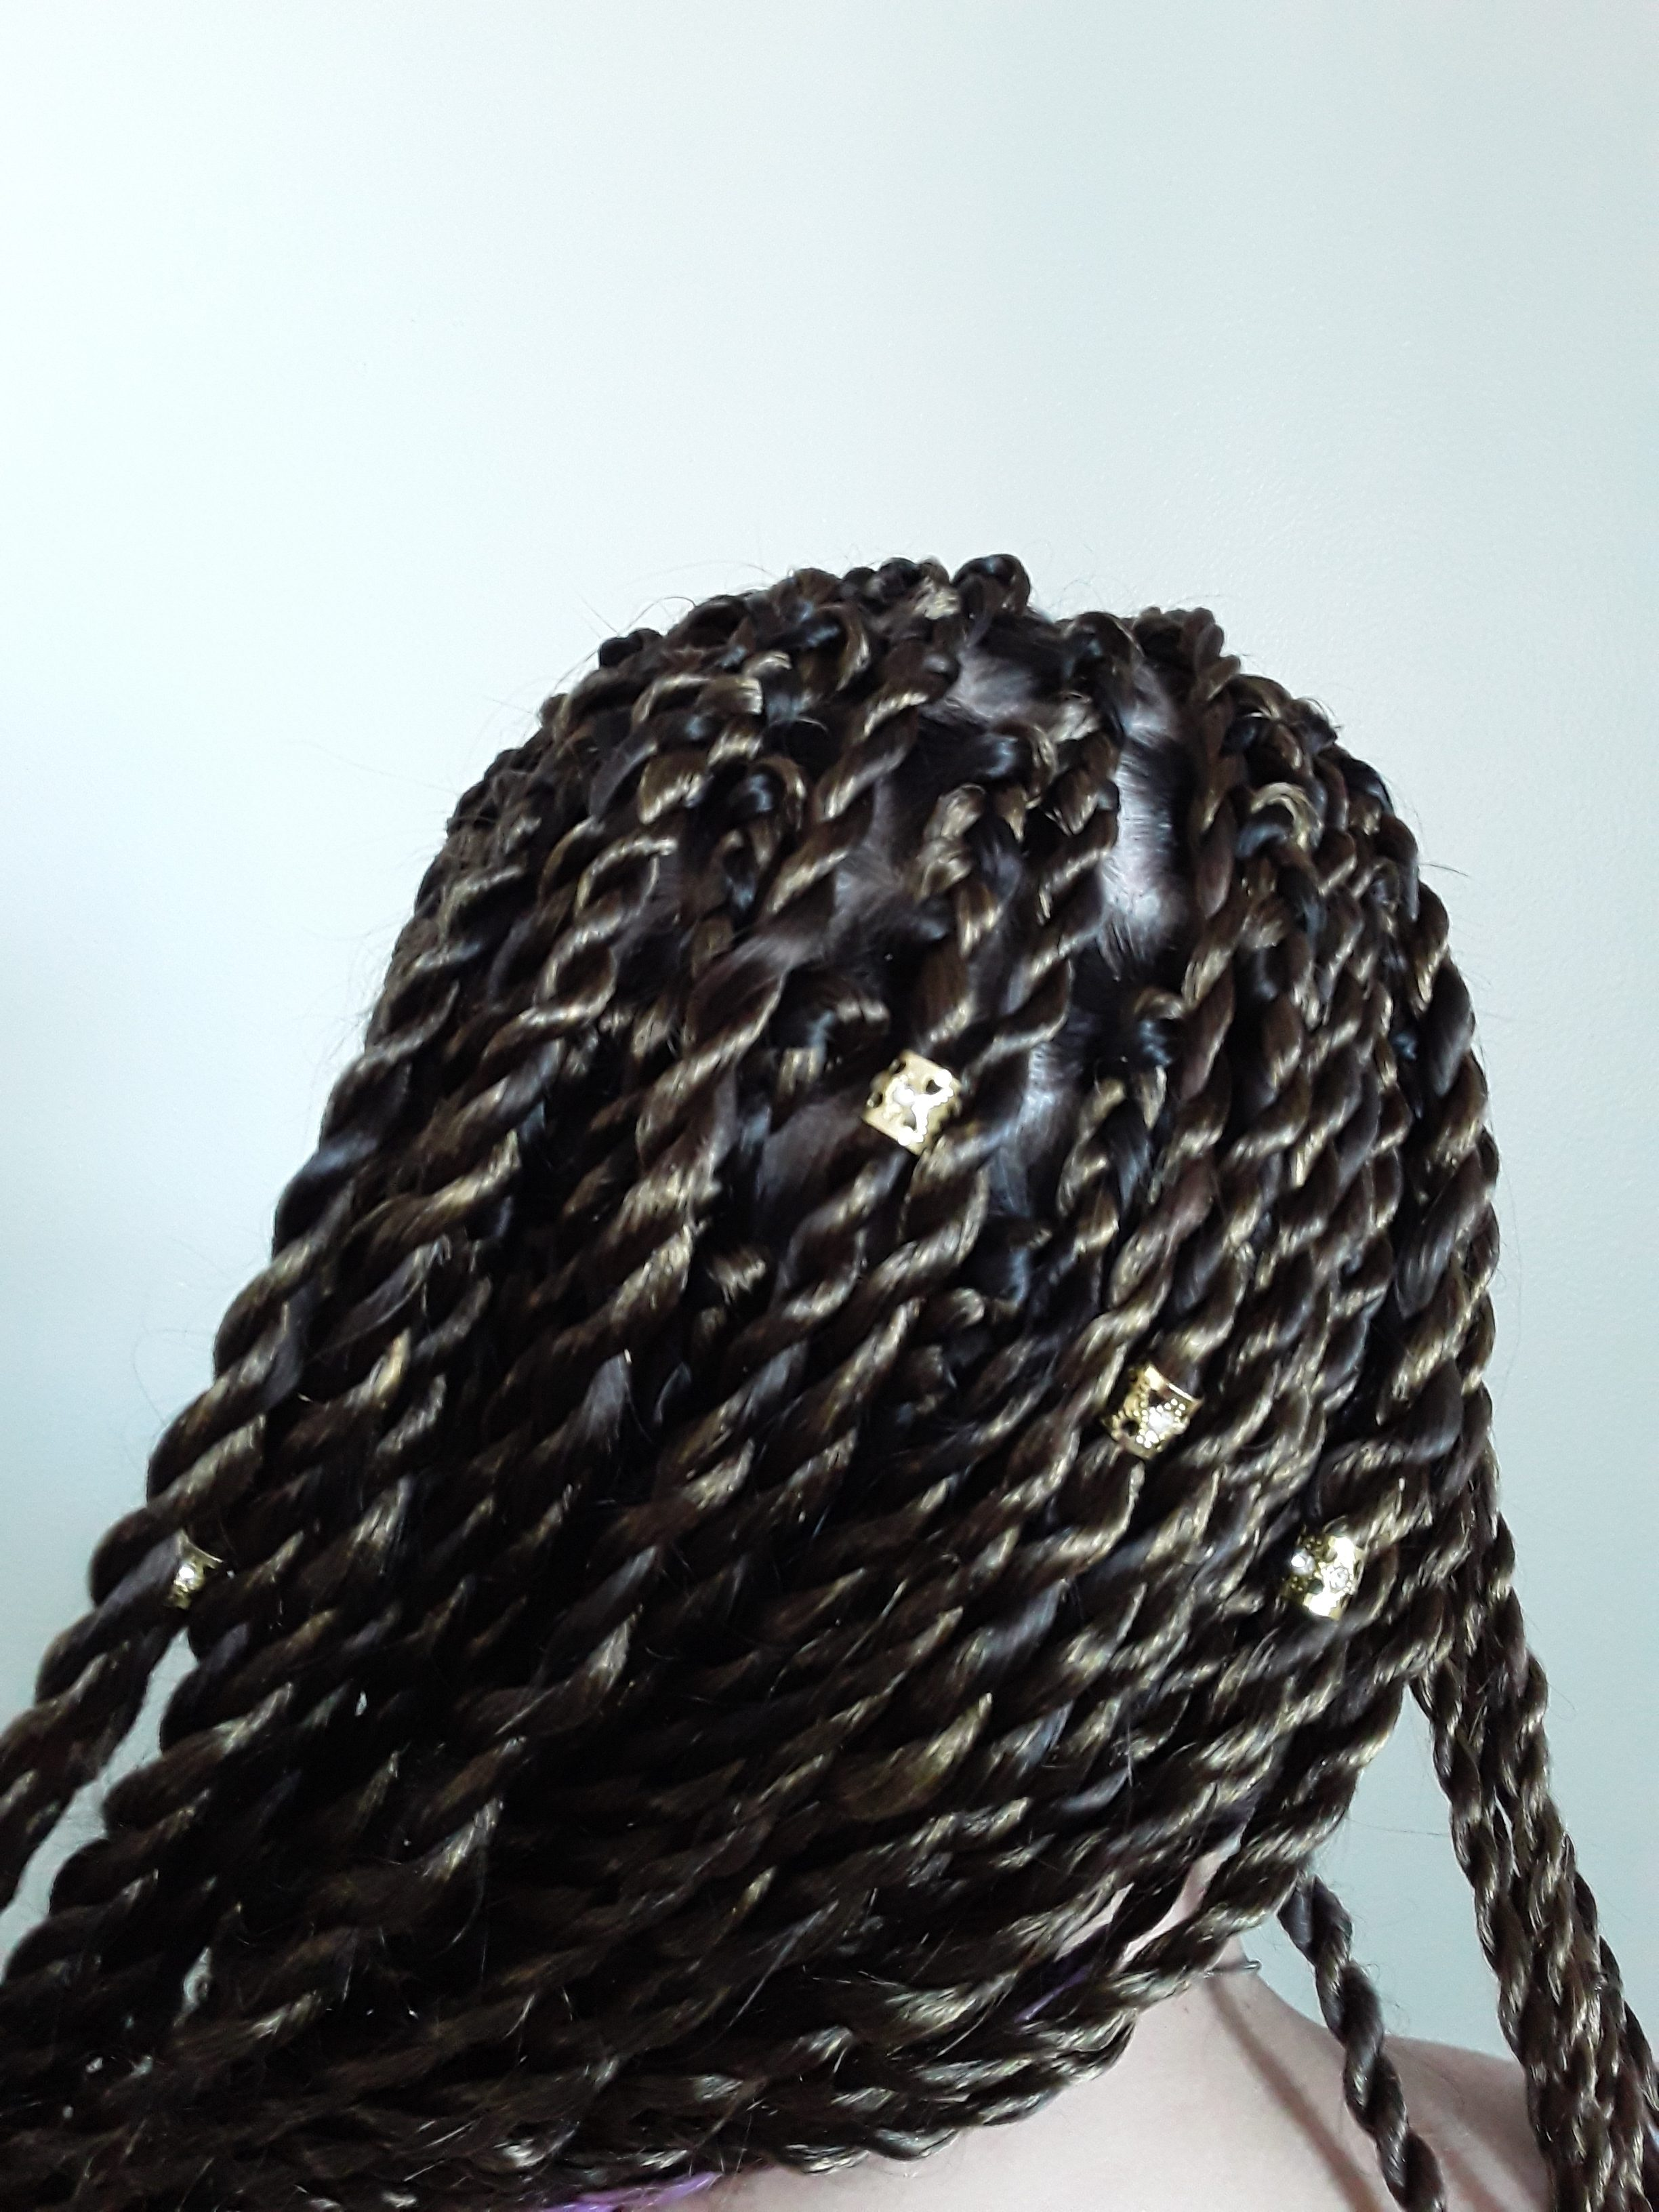 Paulette Mobile Hair Braiding